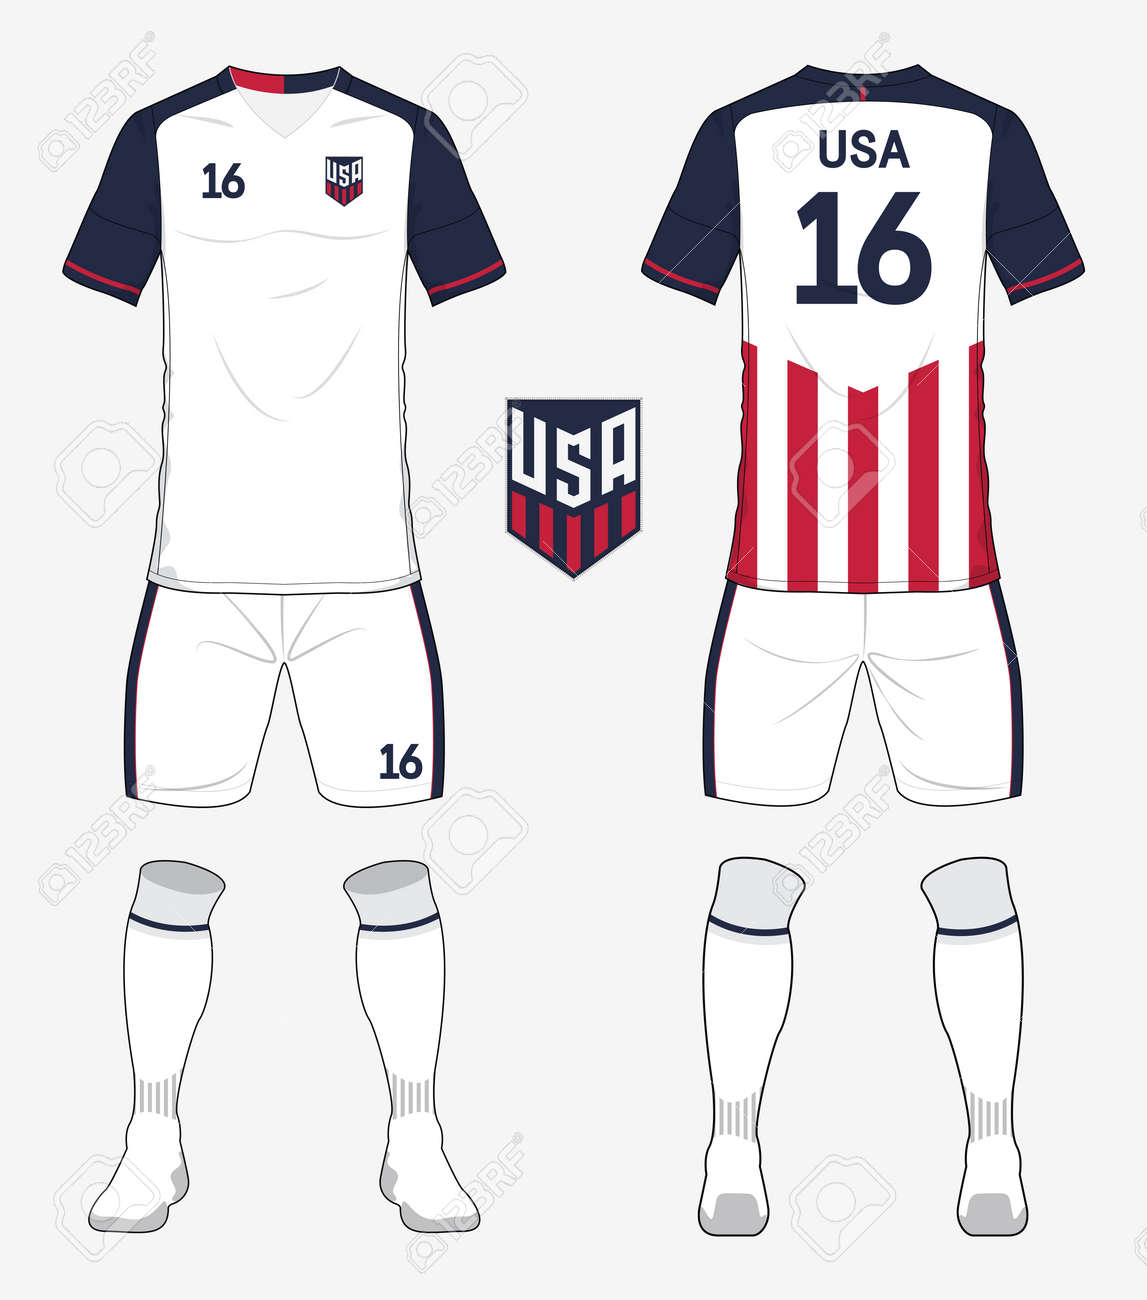 387a43b1a8b5 ... sweden set of united states of america soccer kit or football jersey  template for football club ...